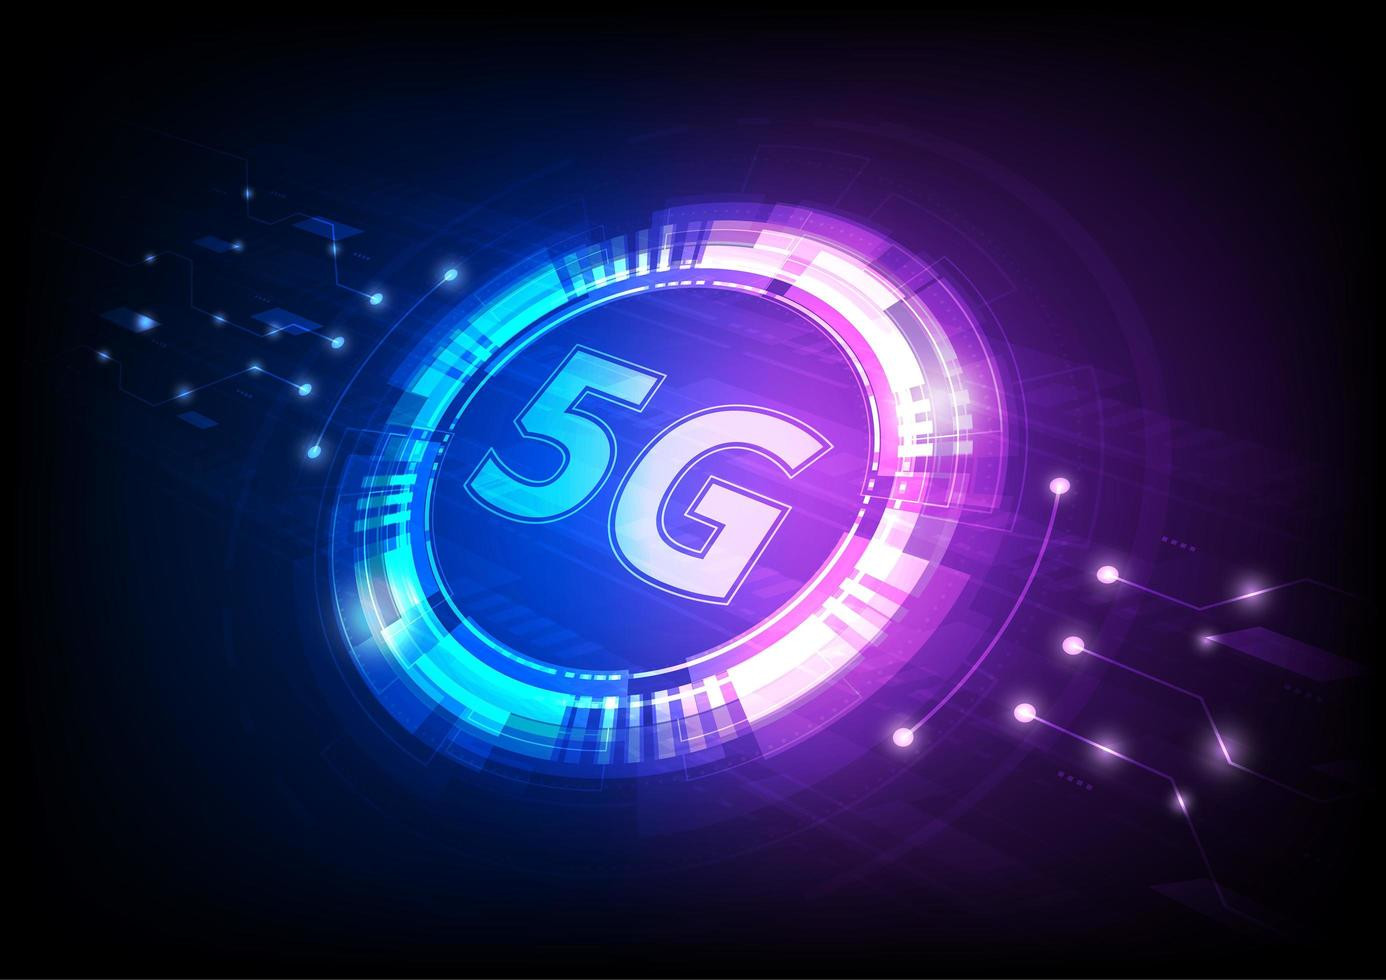 Blue and Pink 5G Digital Technology at Angle - Download Free Vectors,  Clipart Graphics & Vector Art